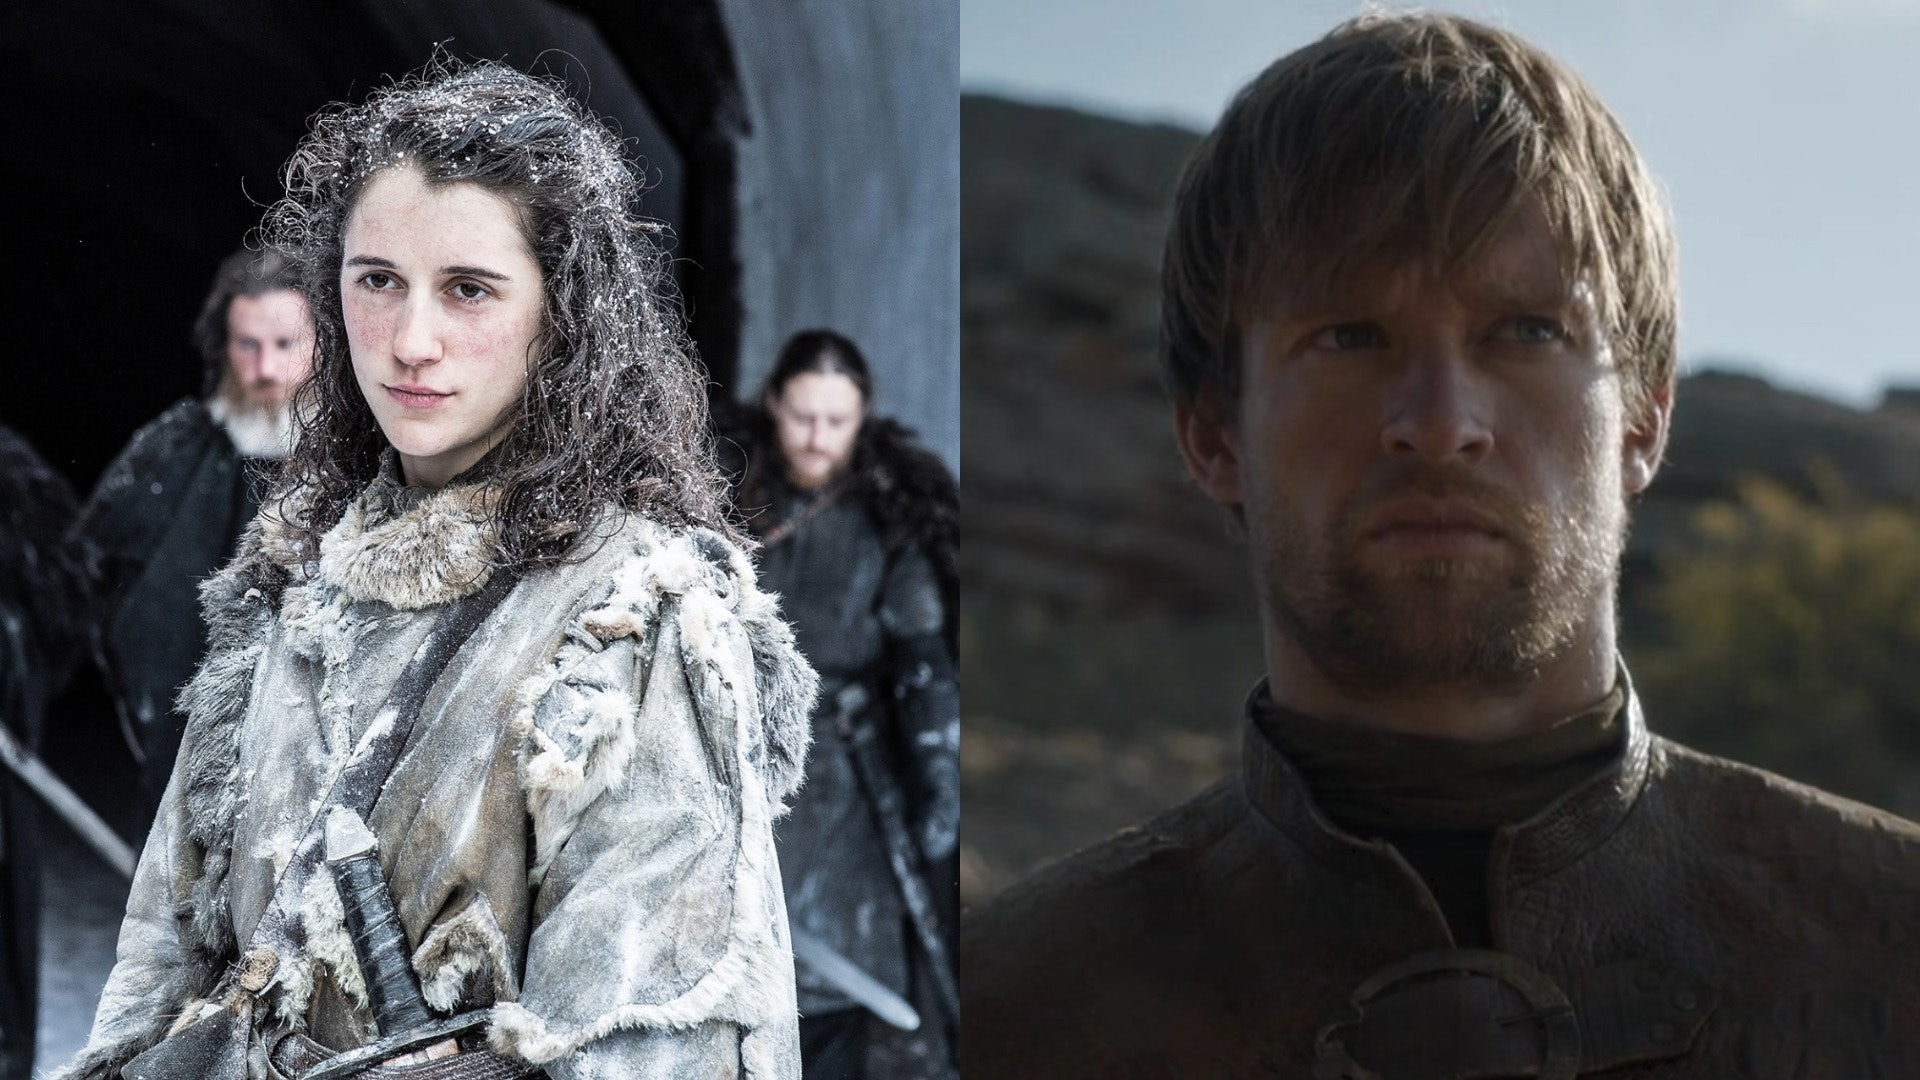 Game of Thrones Meera and Howland Reed